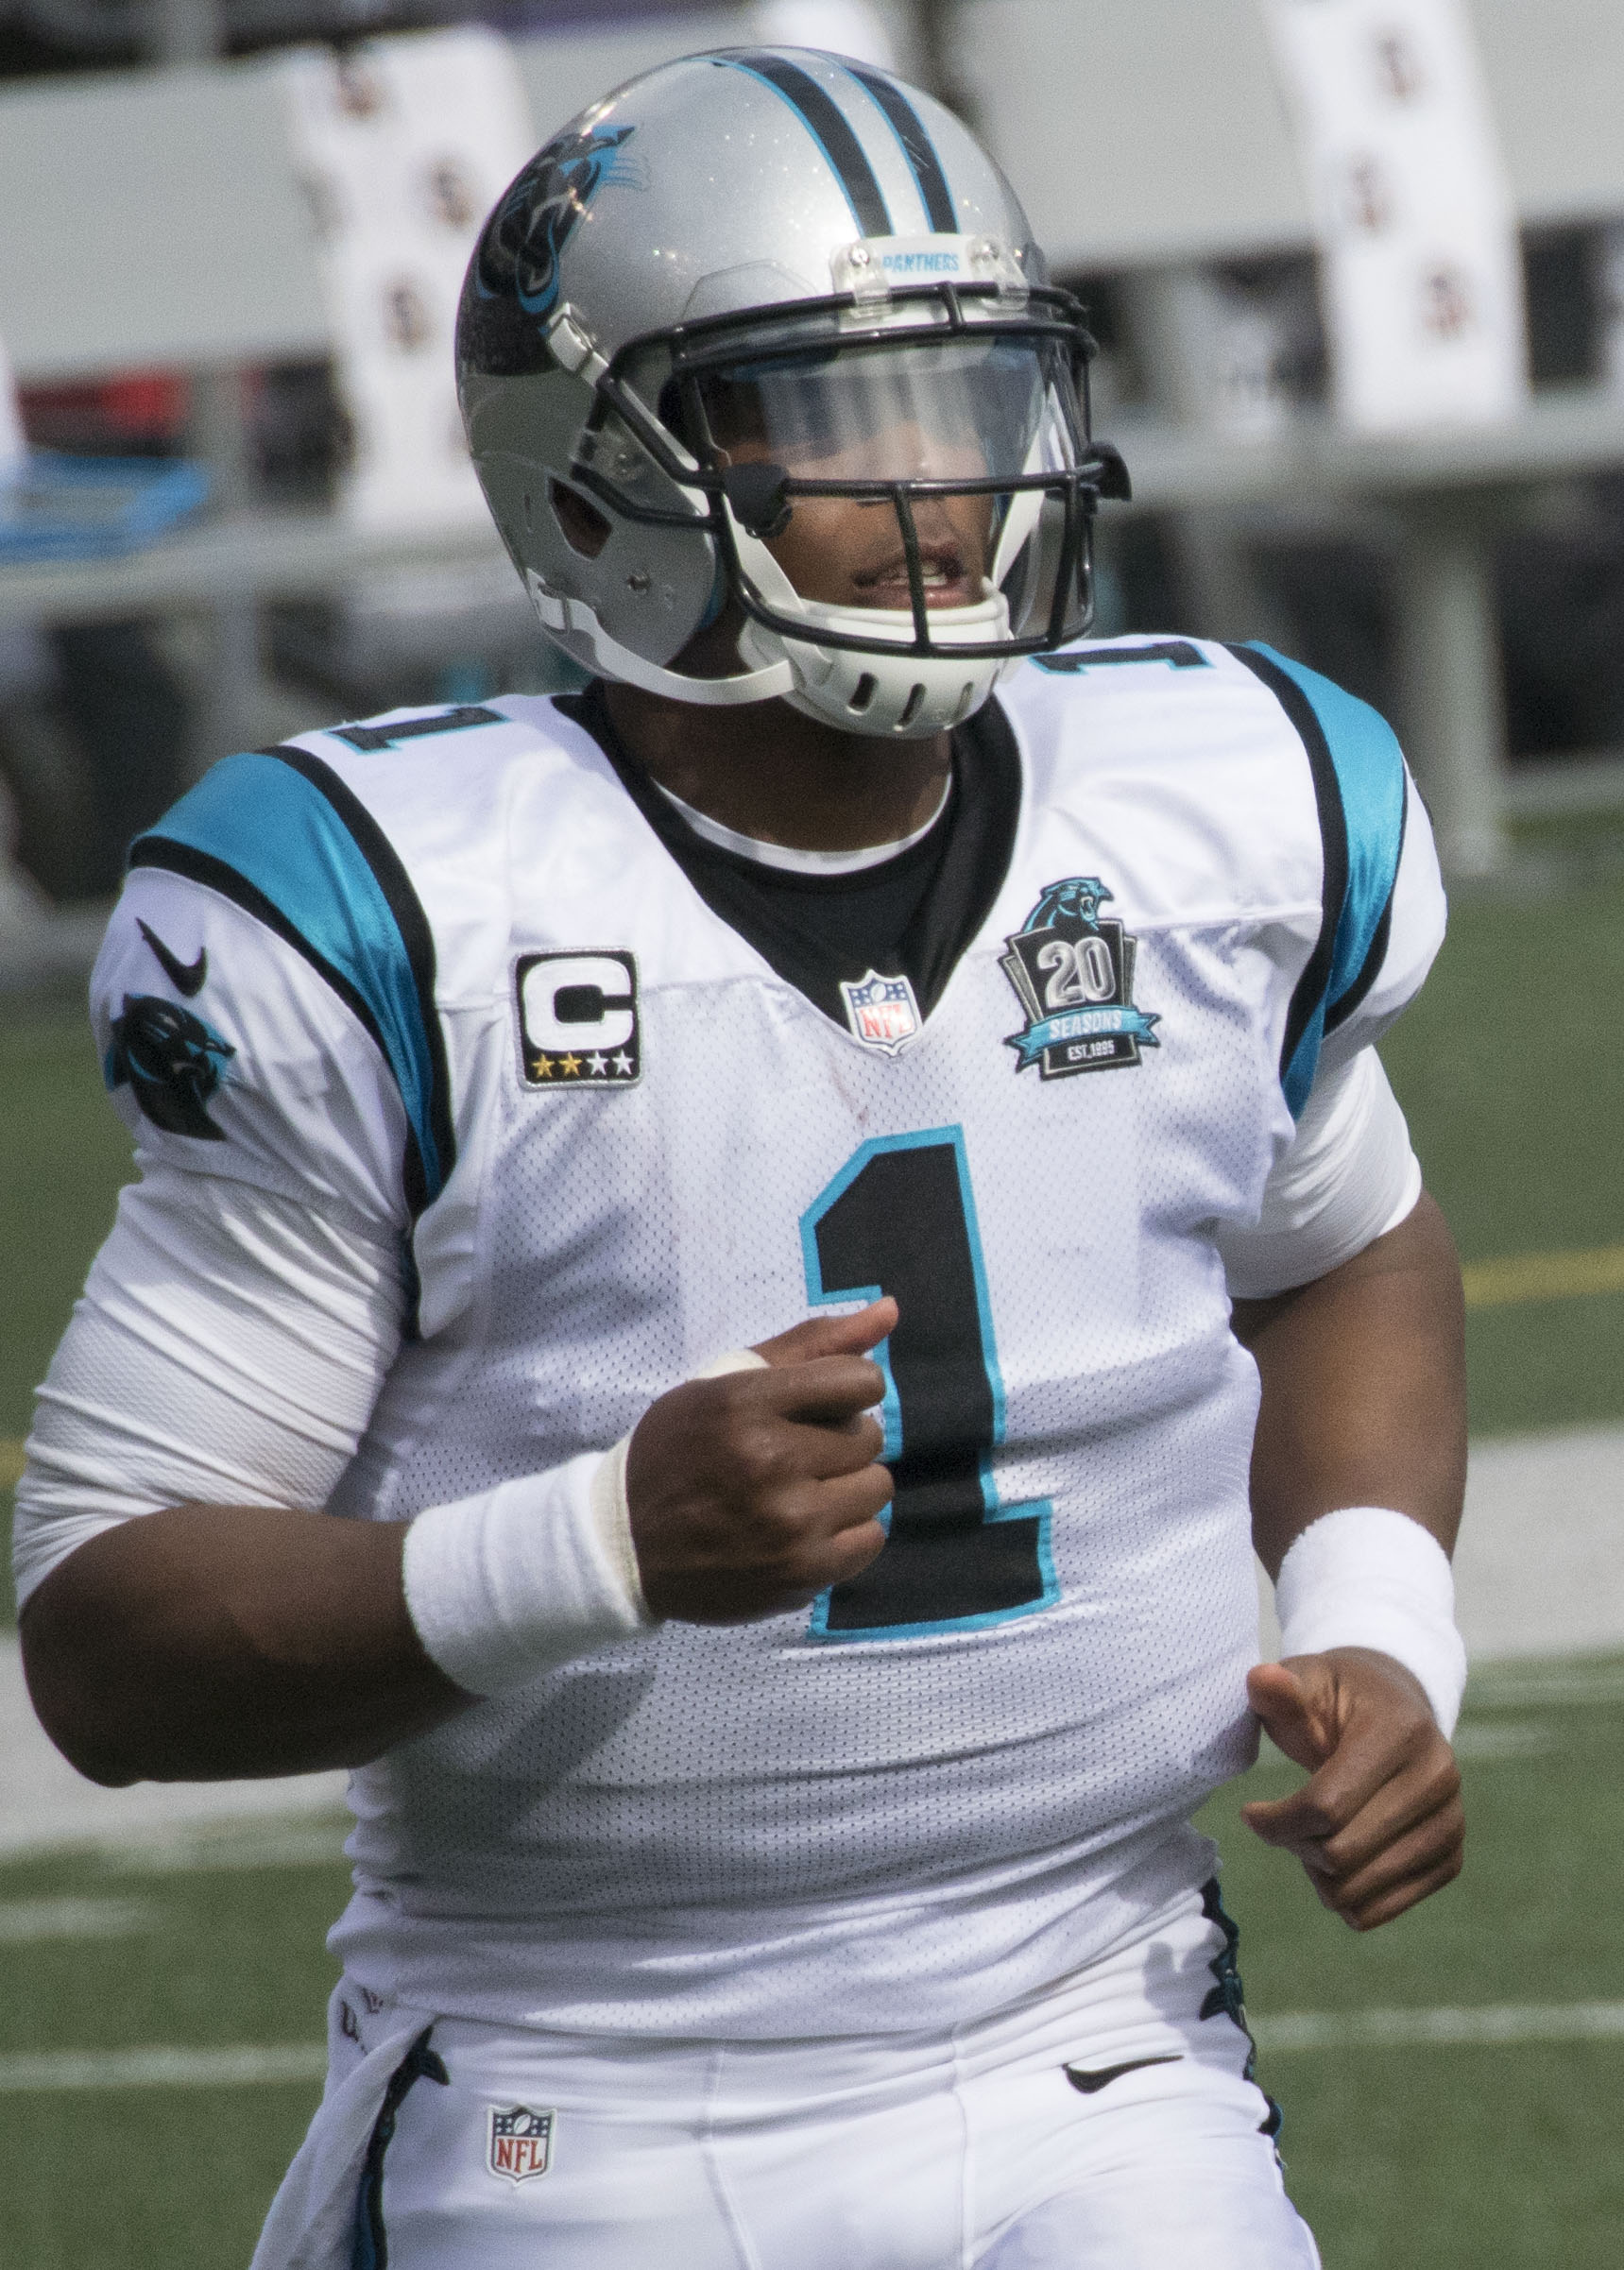 Depiction of Cam Newton